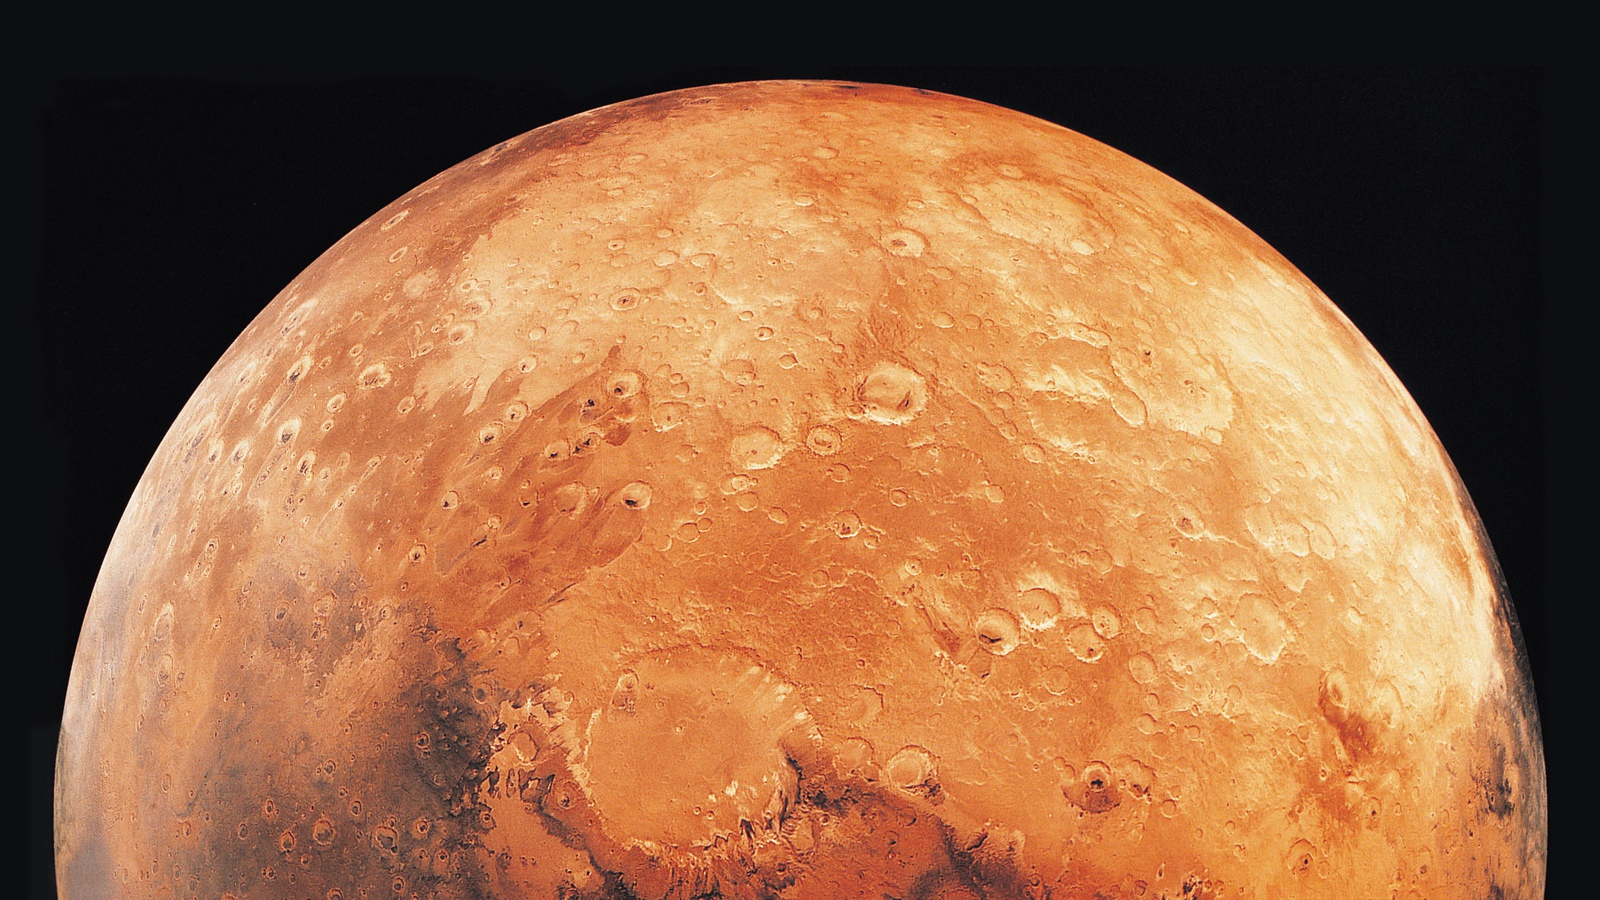 Fourth Planet from the Sun: Tales of Mars from The